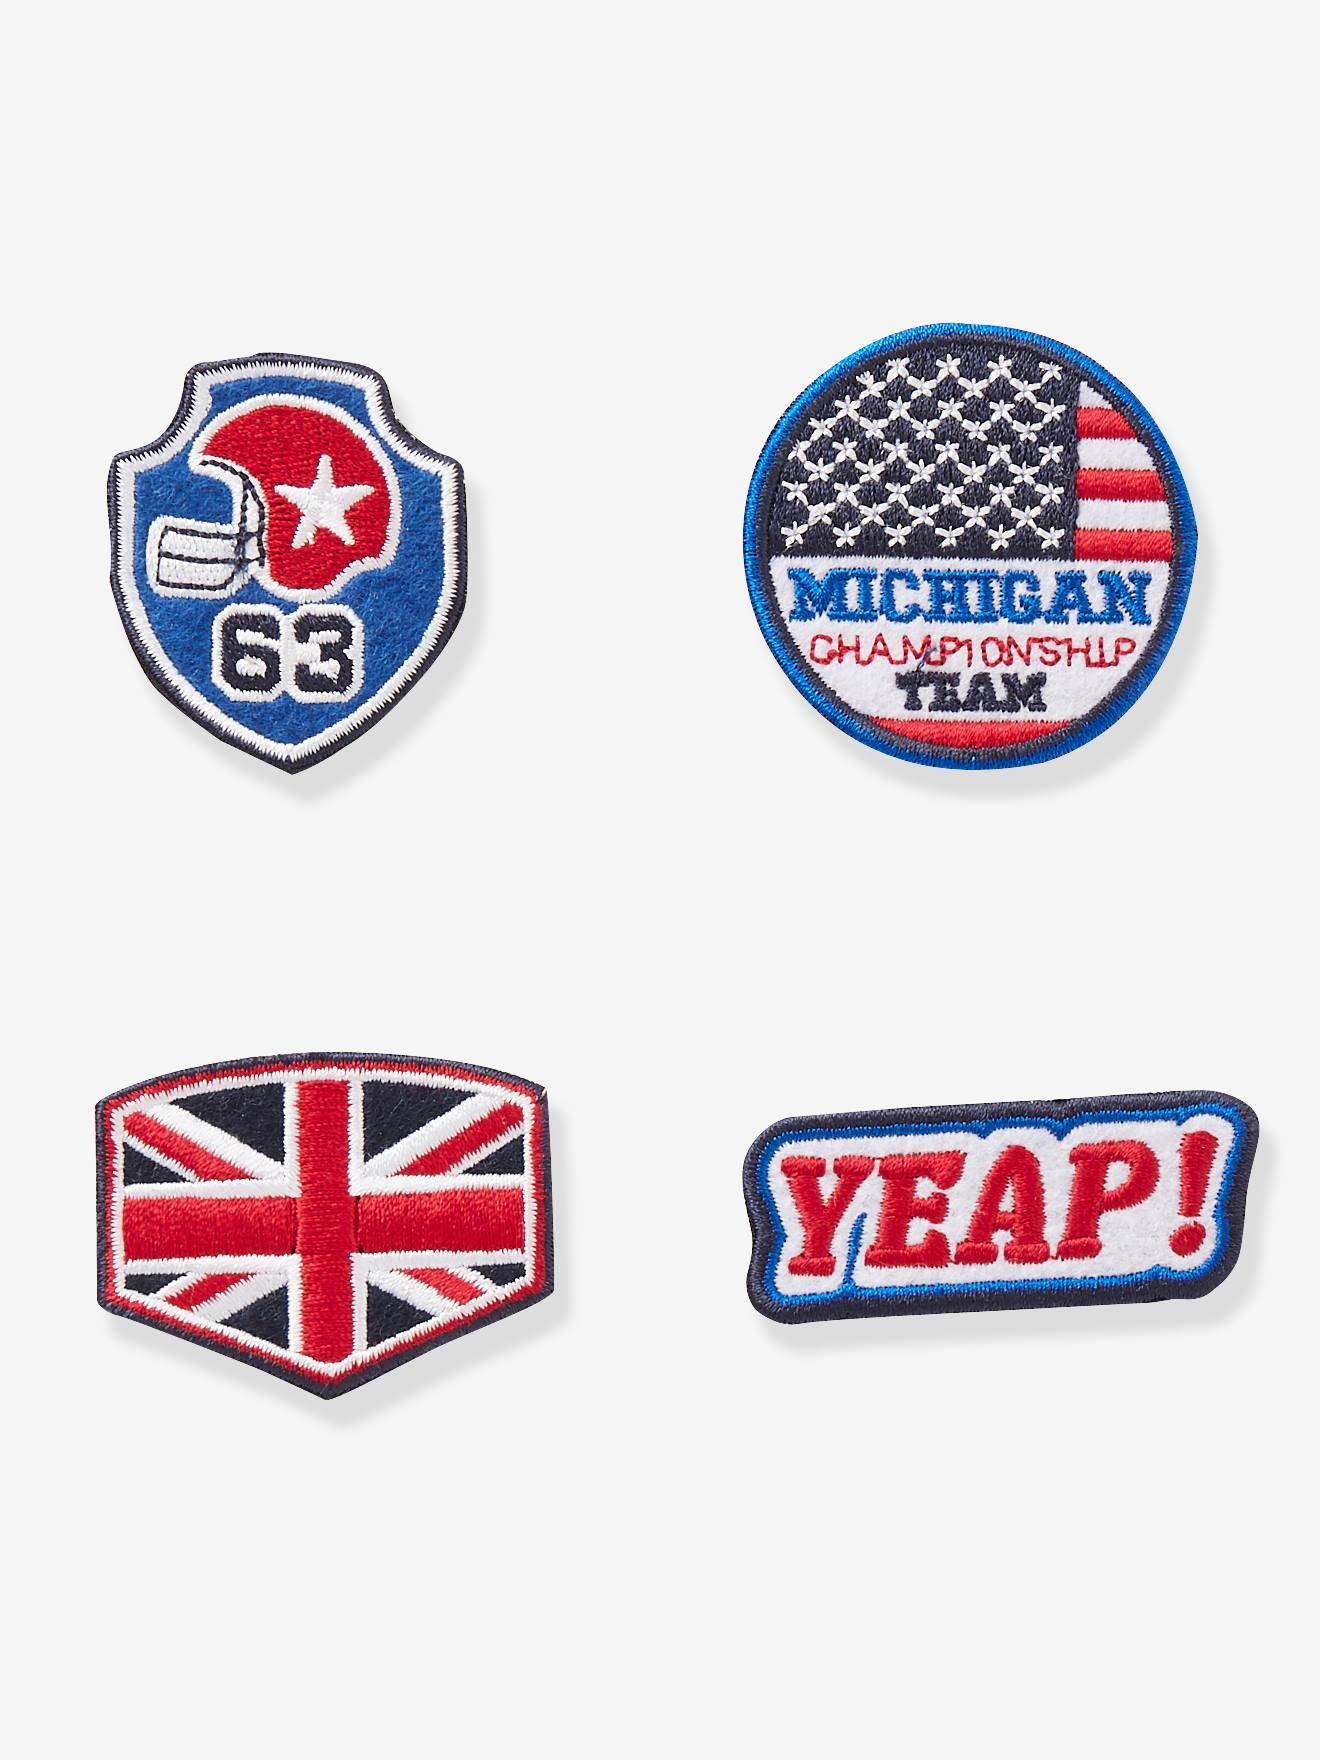 graphic regarding Printable Iron on Patches named Pack of 4 Iron-Upon Patches, Athletics Concept, for Boys - blue brilliant all earlier mentioned published, Boys Vertbaudet